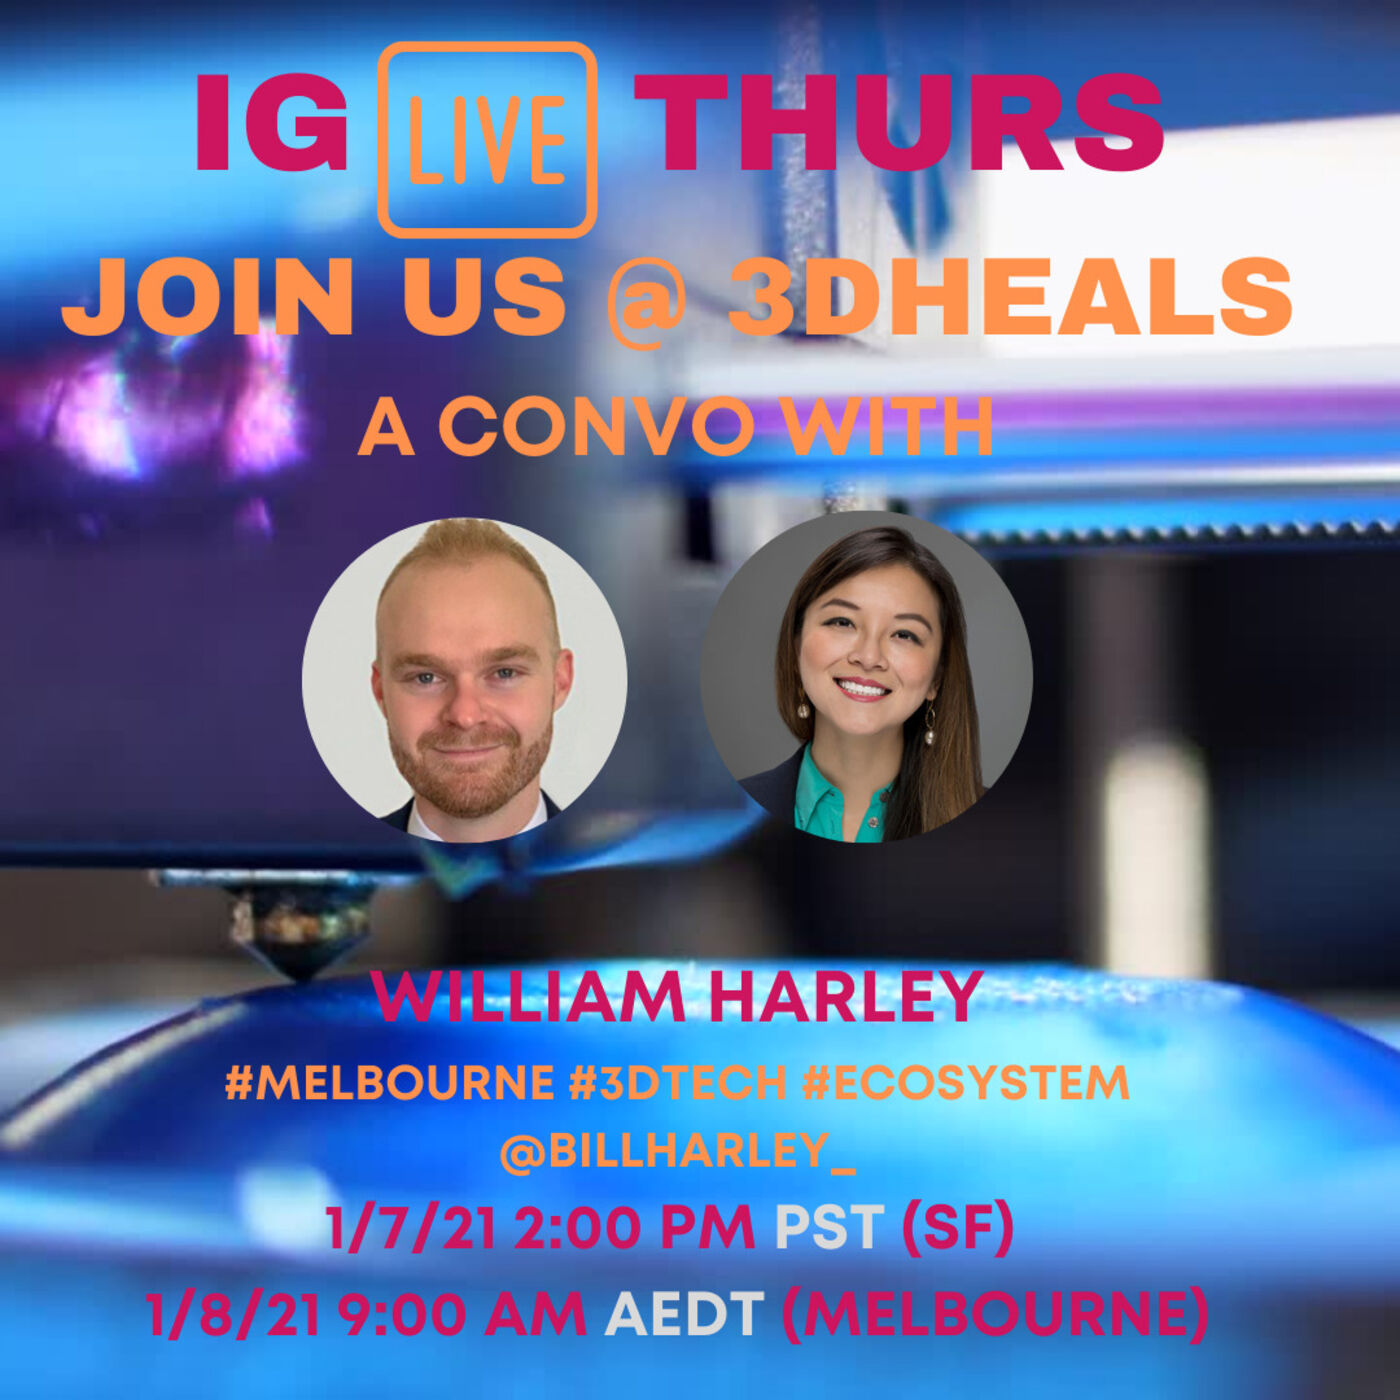 3DHEALS IG Live: William Harley, Healthcare 3D Printing Ecosystem in Melbourne